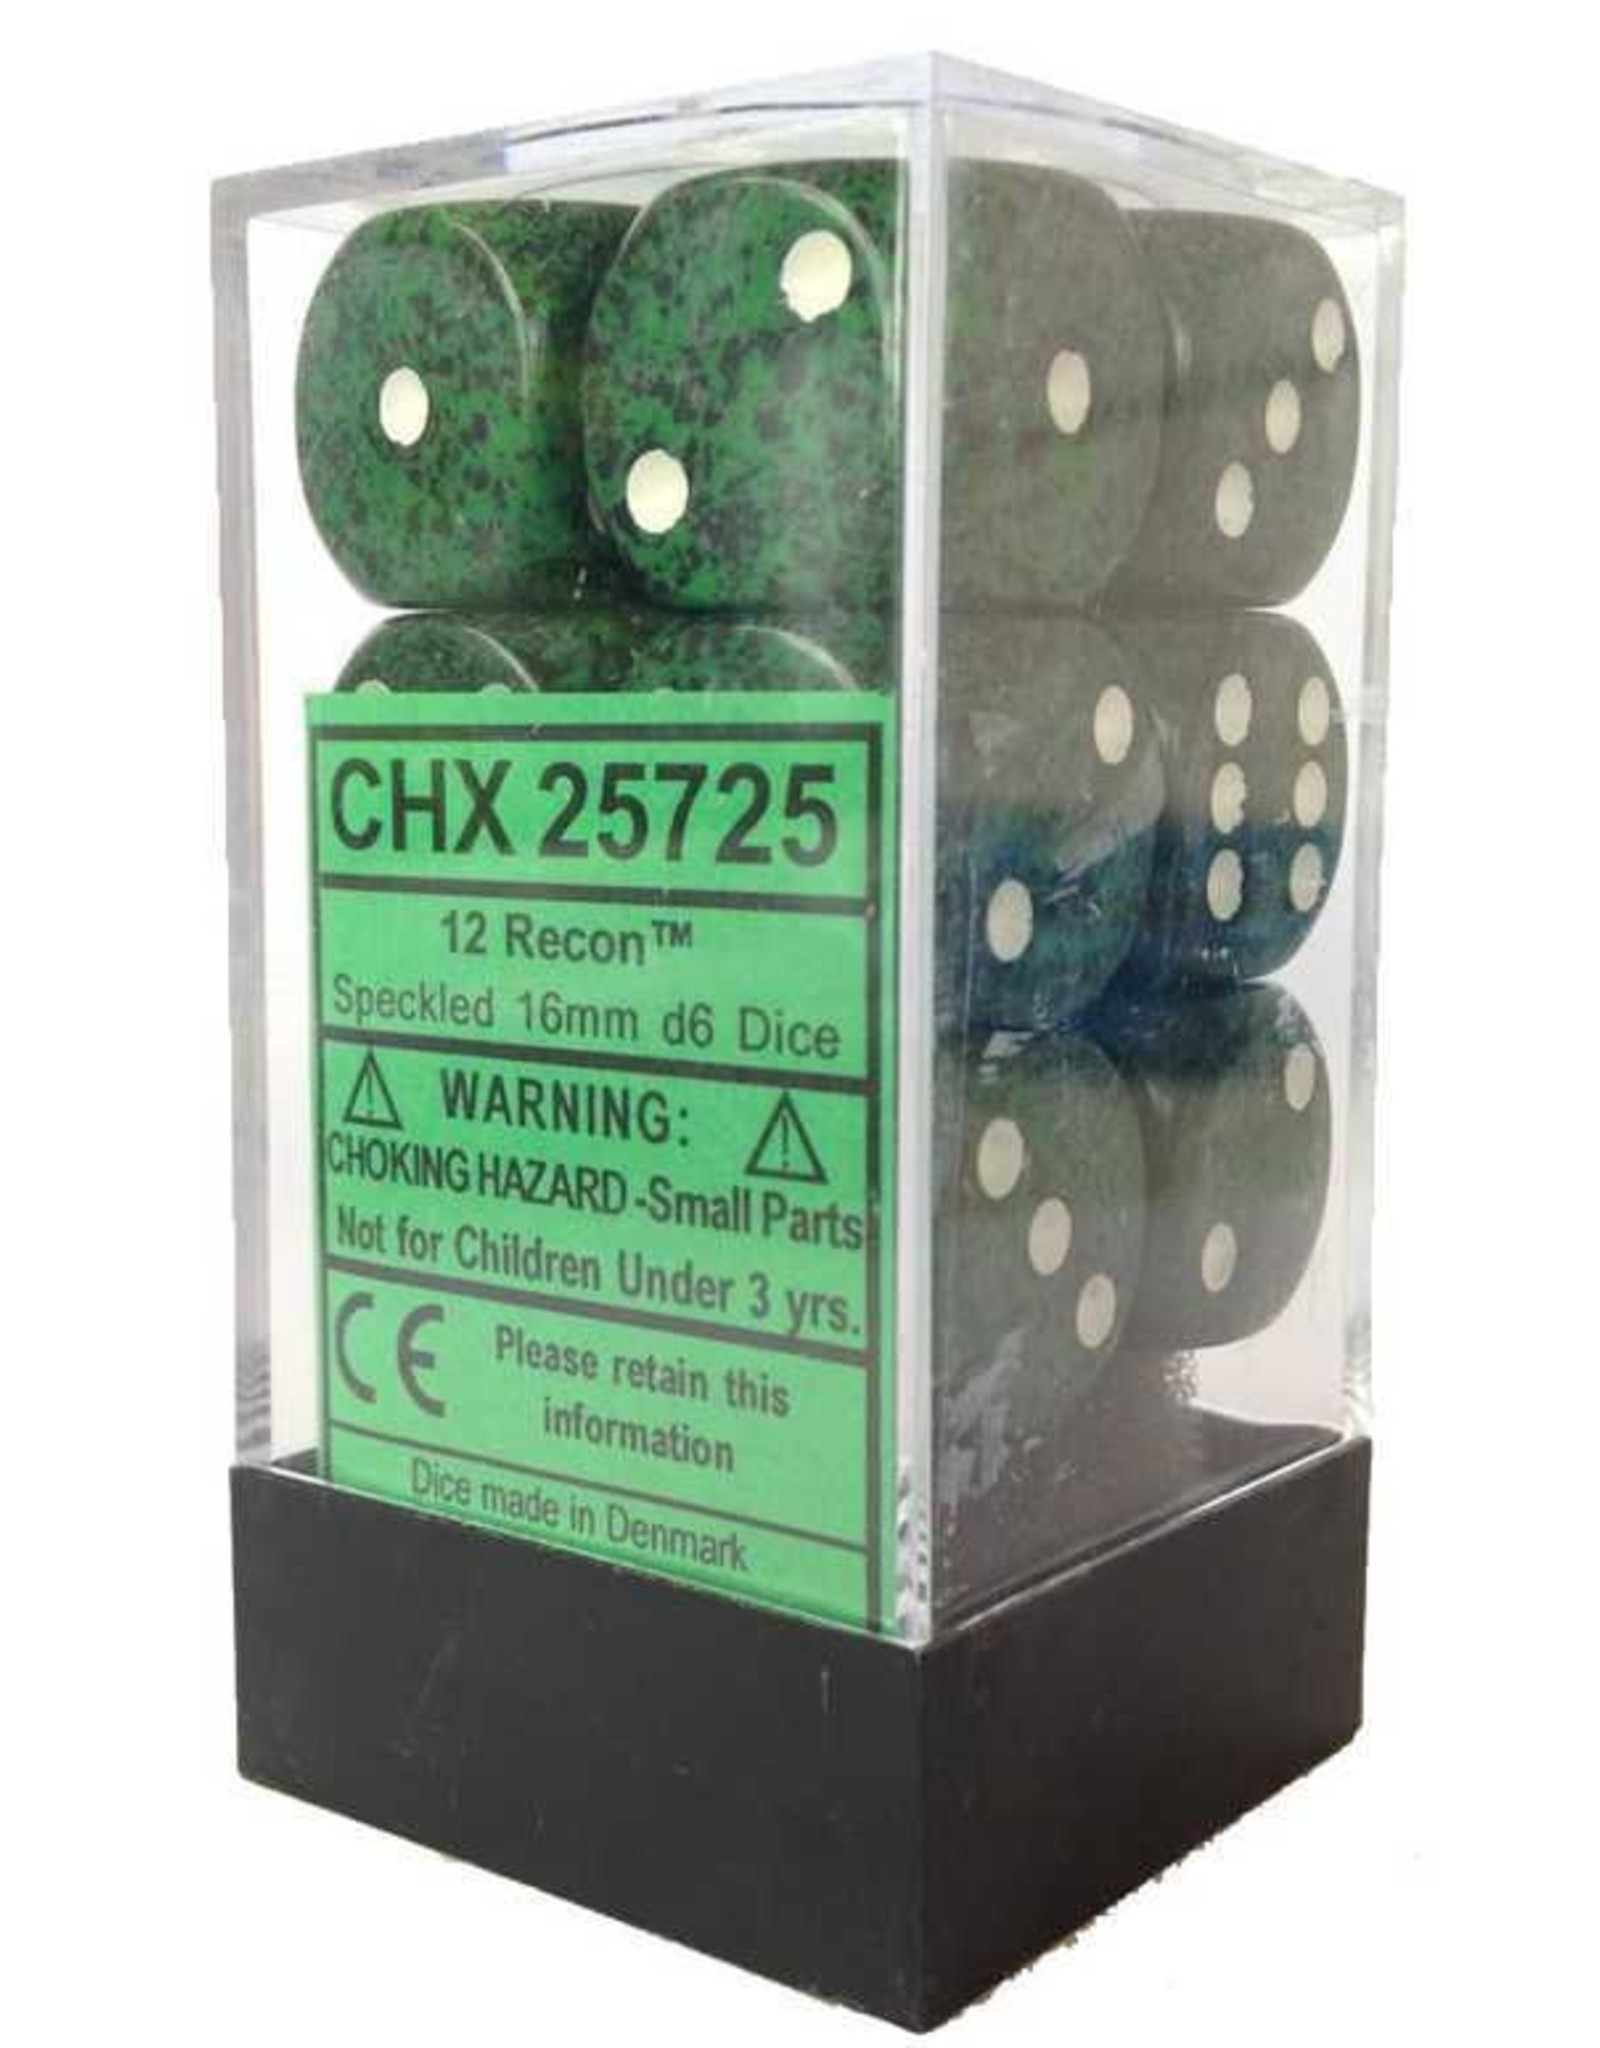 Chessex Recon 16mm D6